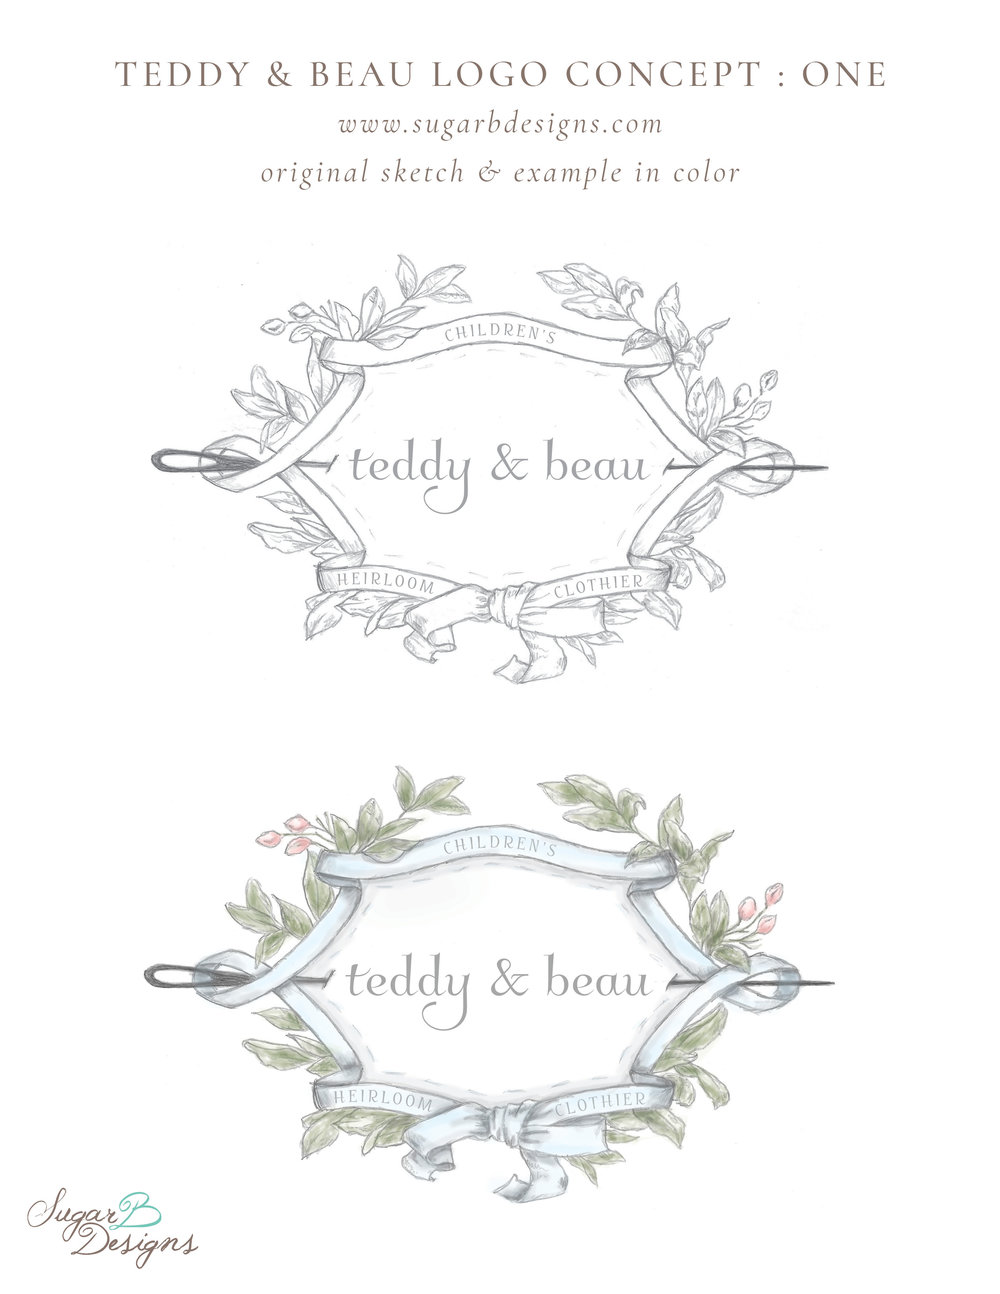 TEDDY & BEAU-Sugar B Designs-CONCEPT ONE.jpg